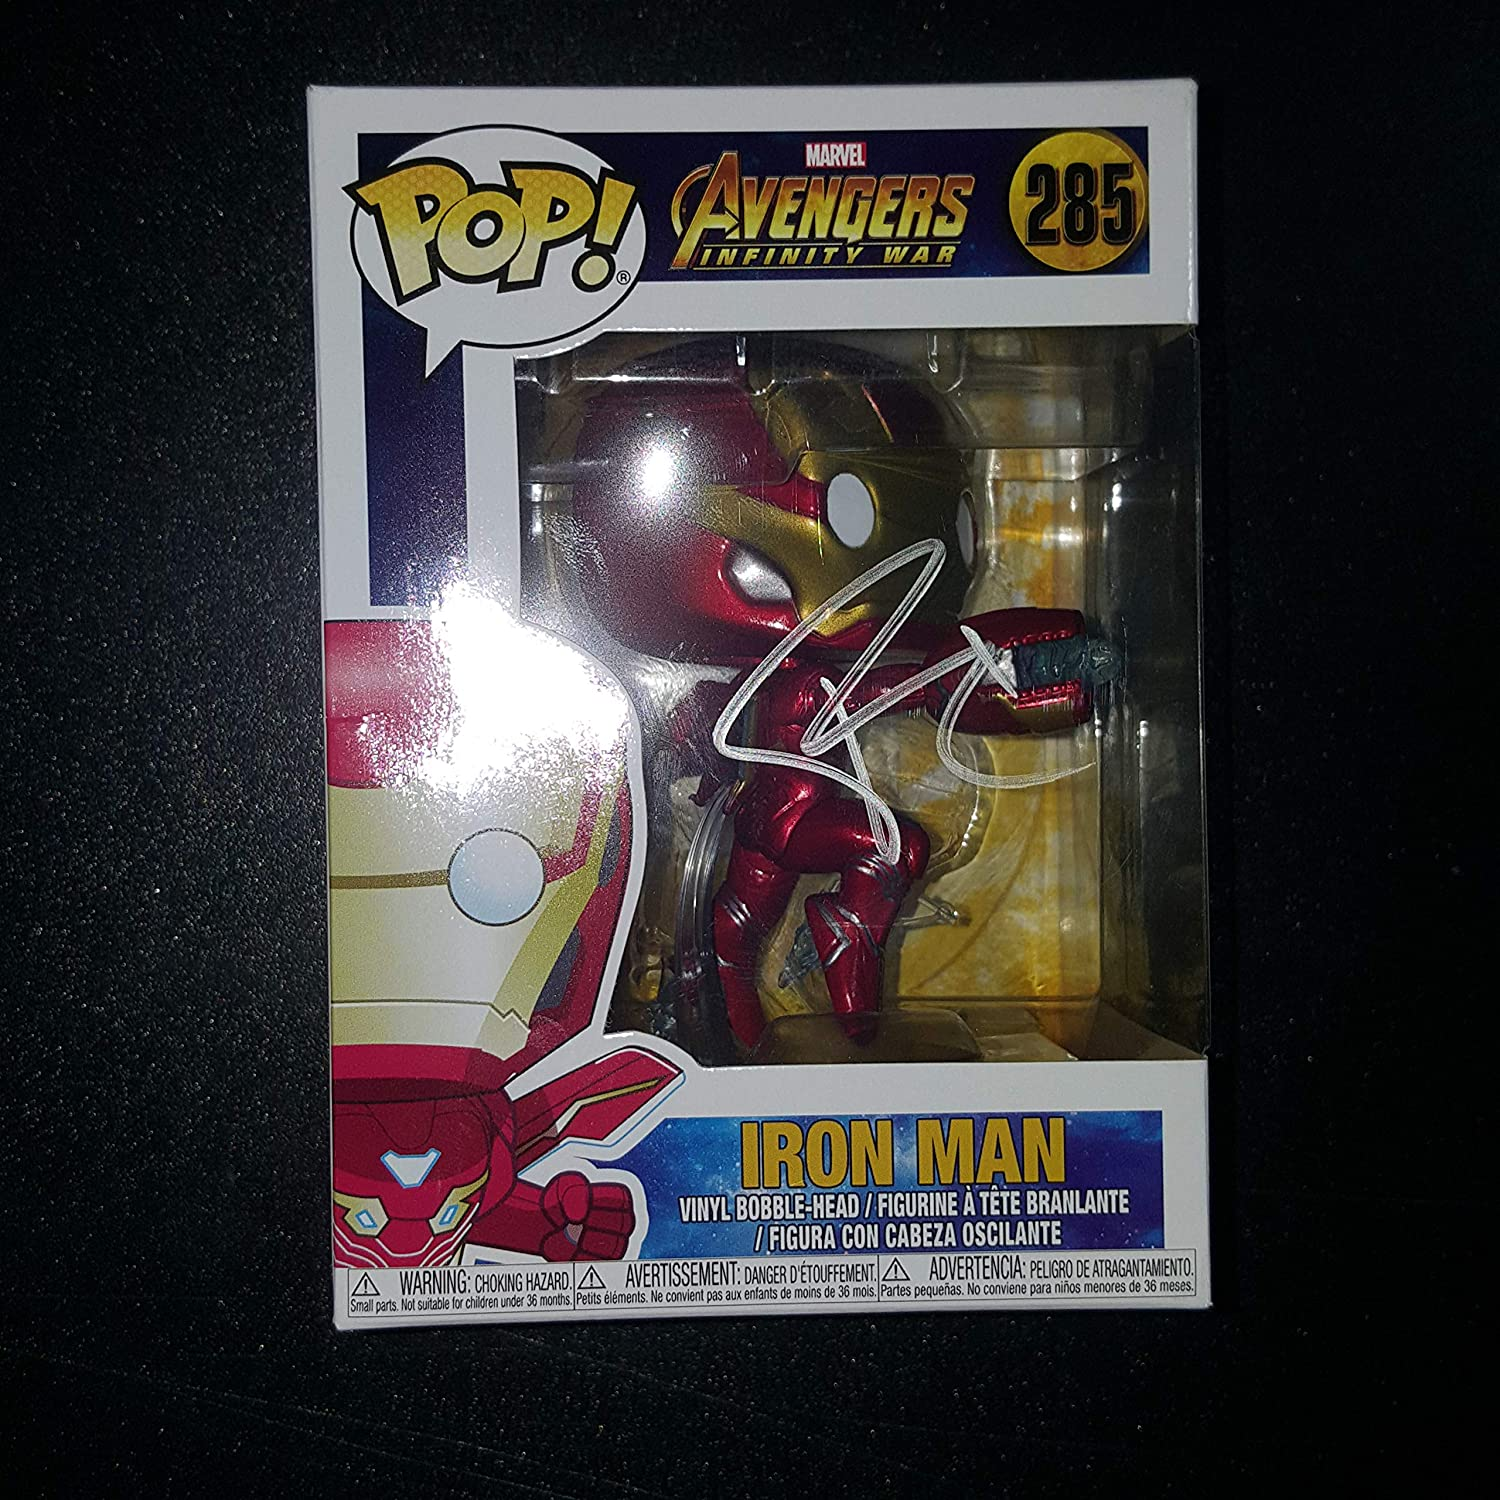 ROBERT DOWNEY JR - Autographed Signed IRON MAN FUNKO POP 285 Vinyl Figure AVENGERS INFINITY WAR